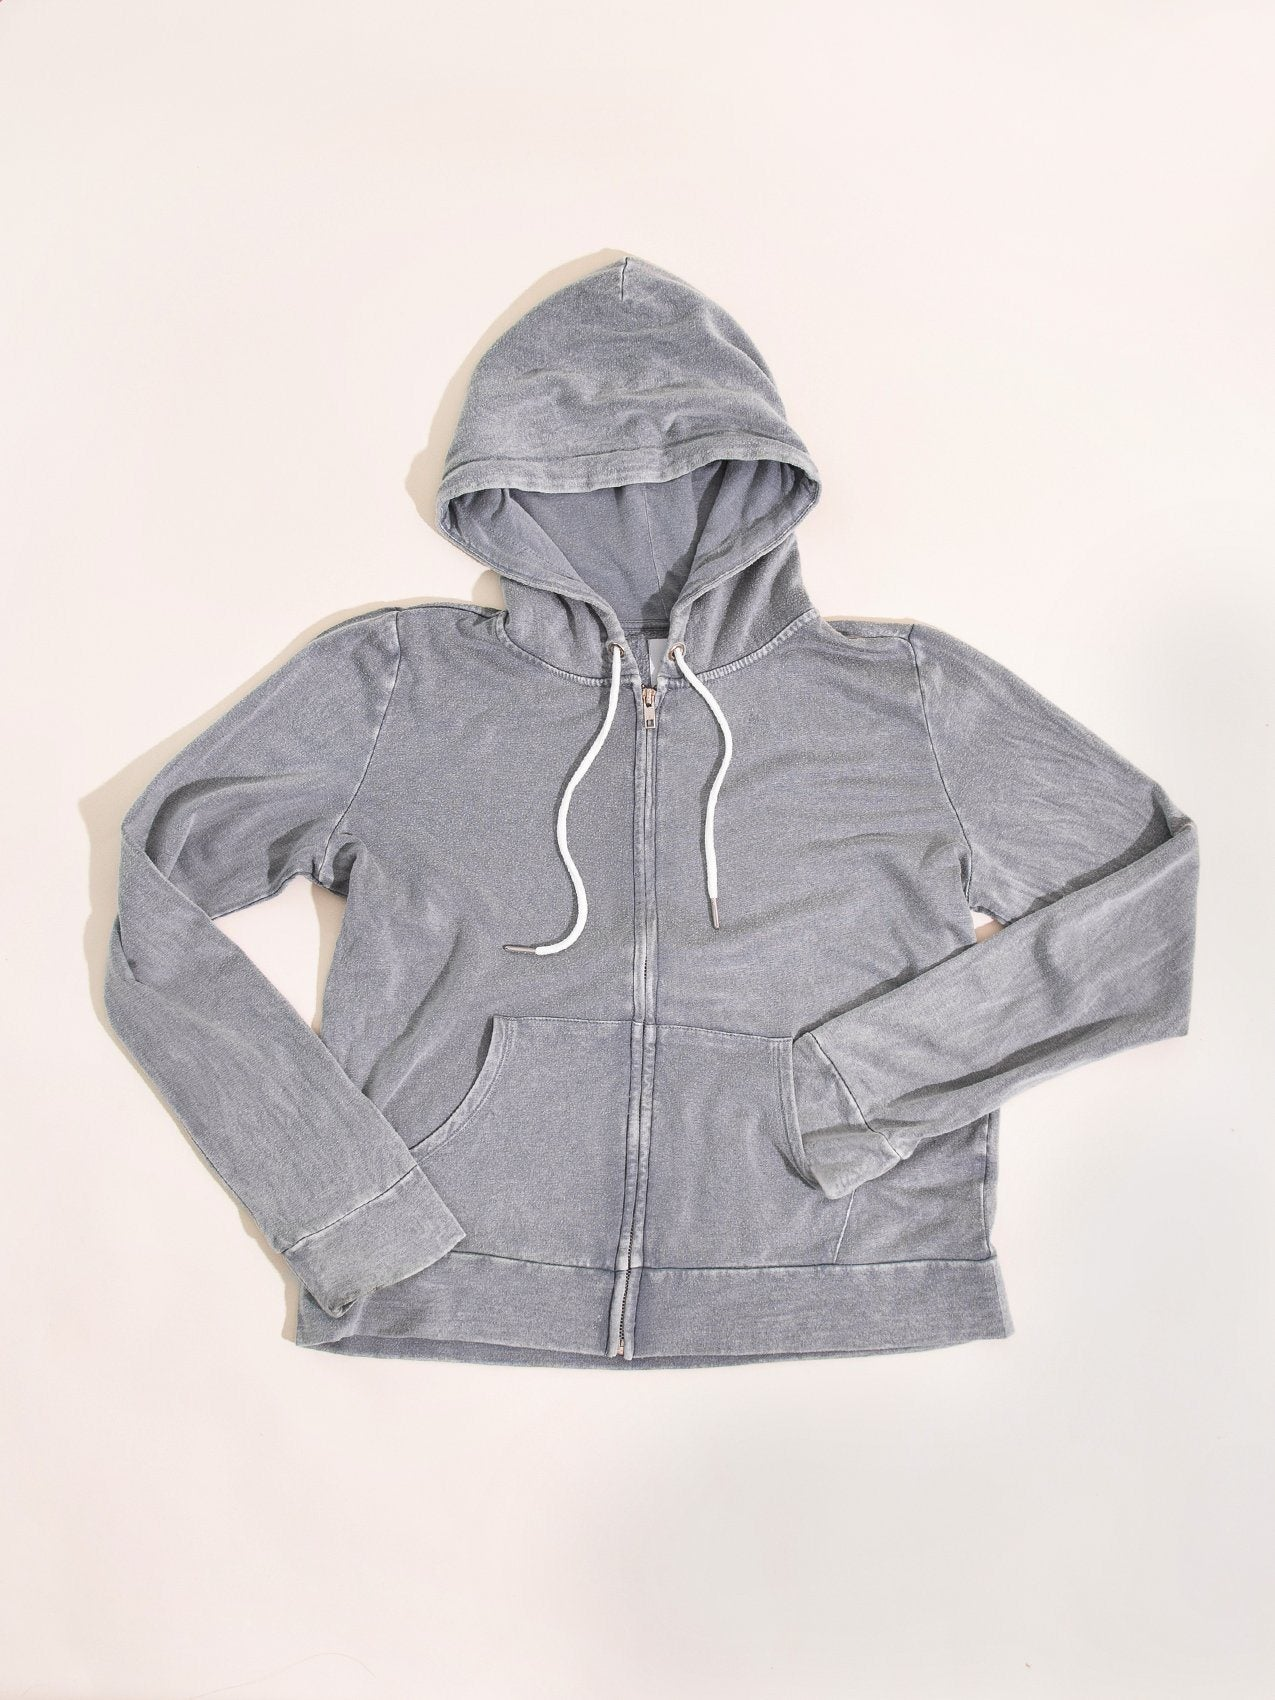 Claire Hoodie Sweater Thread & Supply Light Grey XS